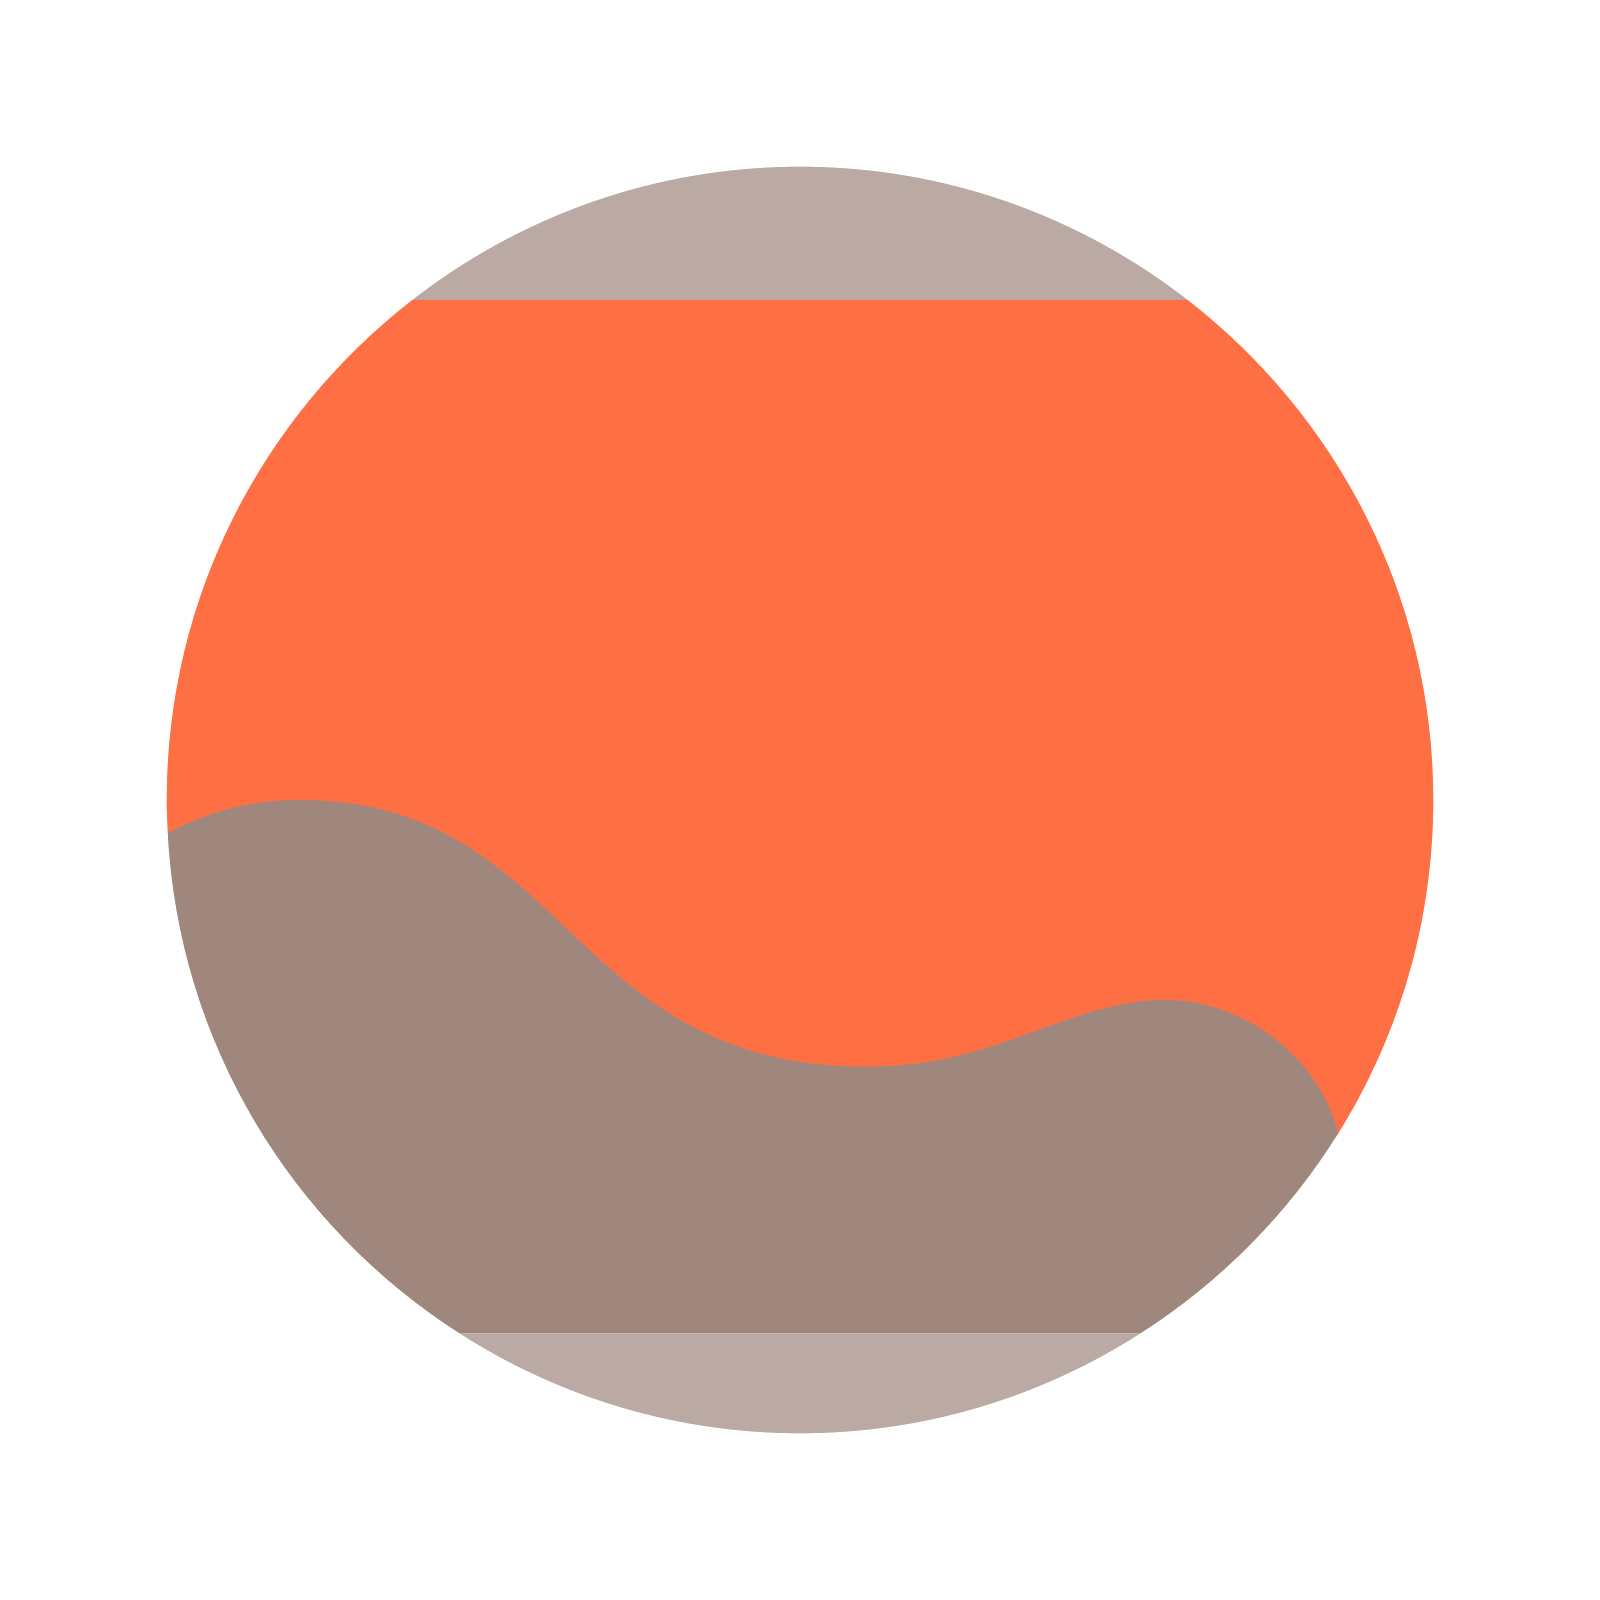 Mars vector. Planet icon free download